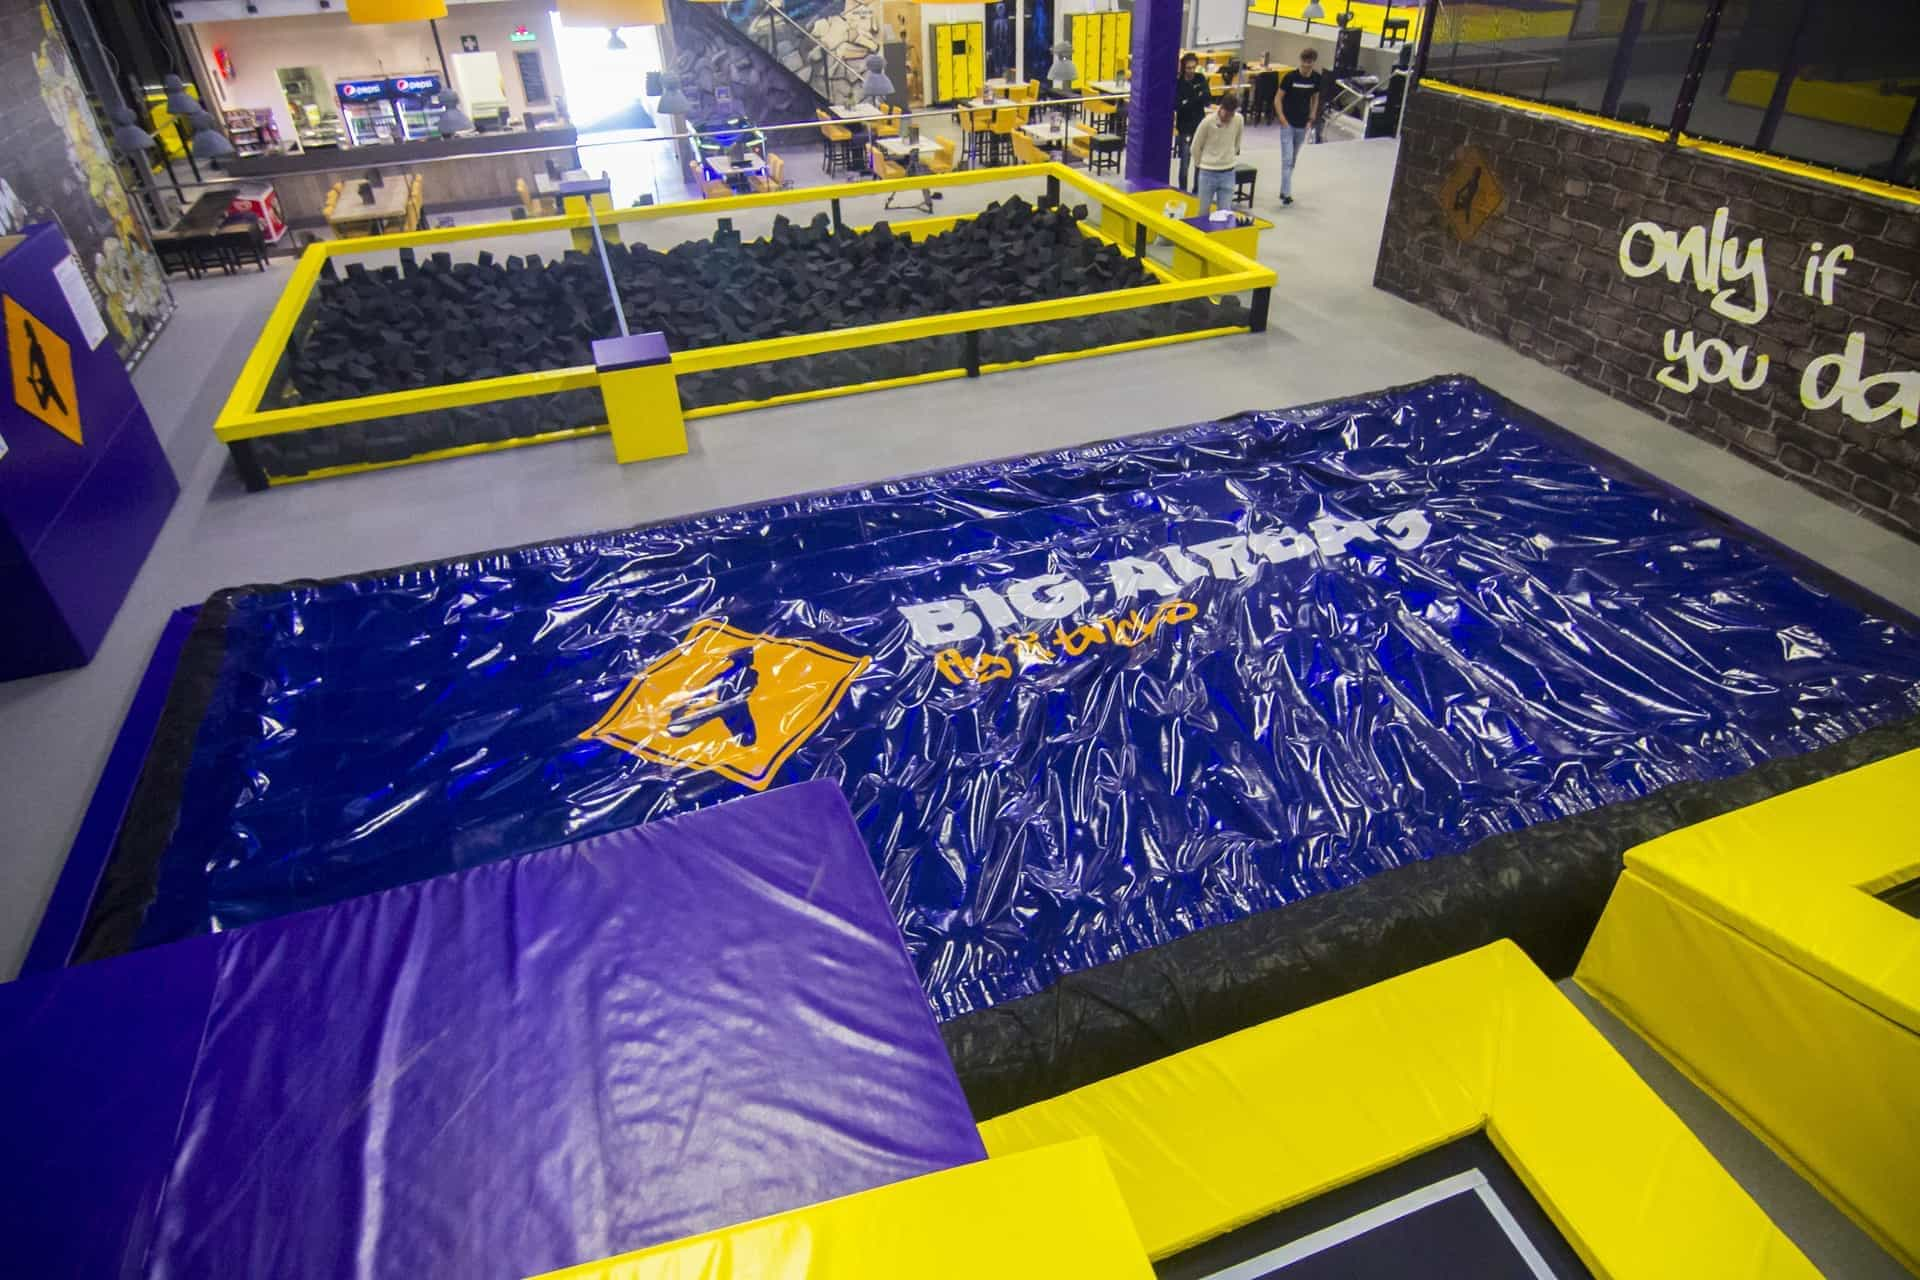 Foam Pit Airbag At Trampoline Parks Across The World